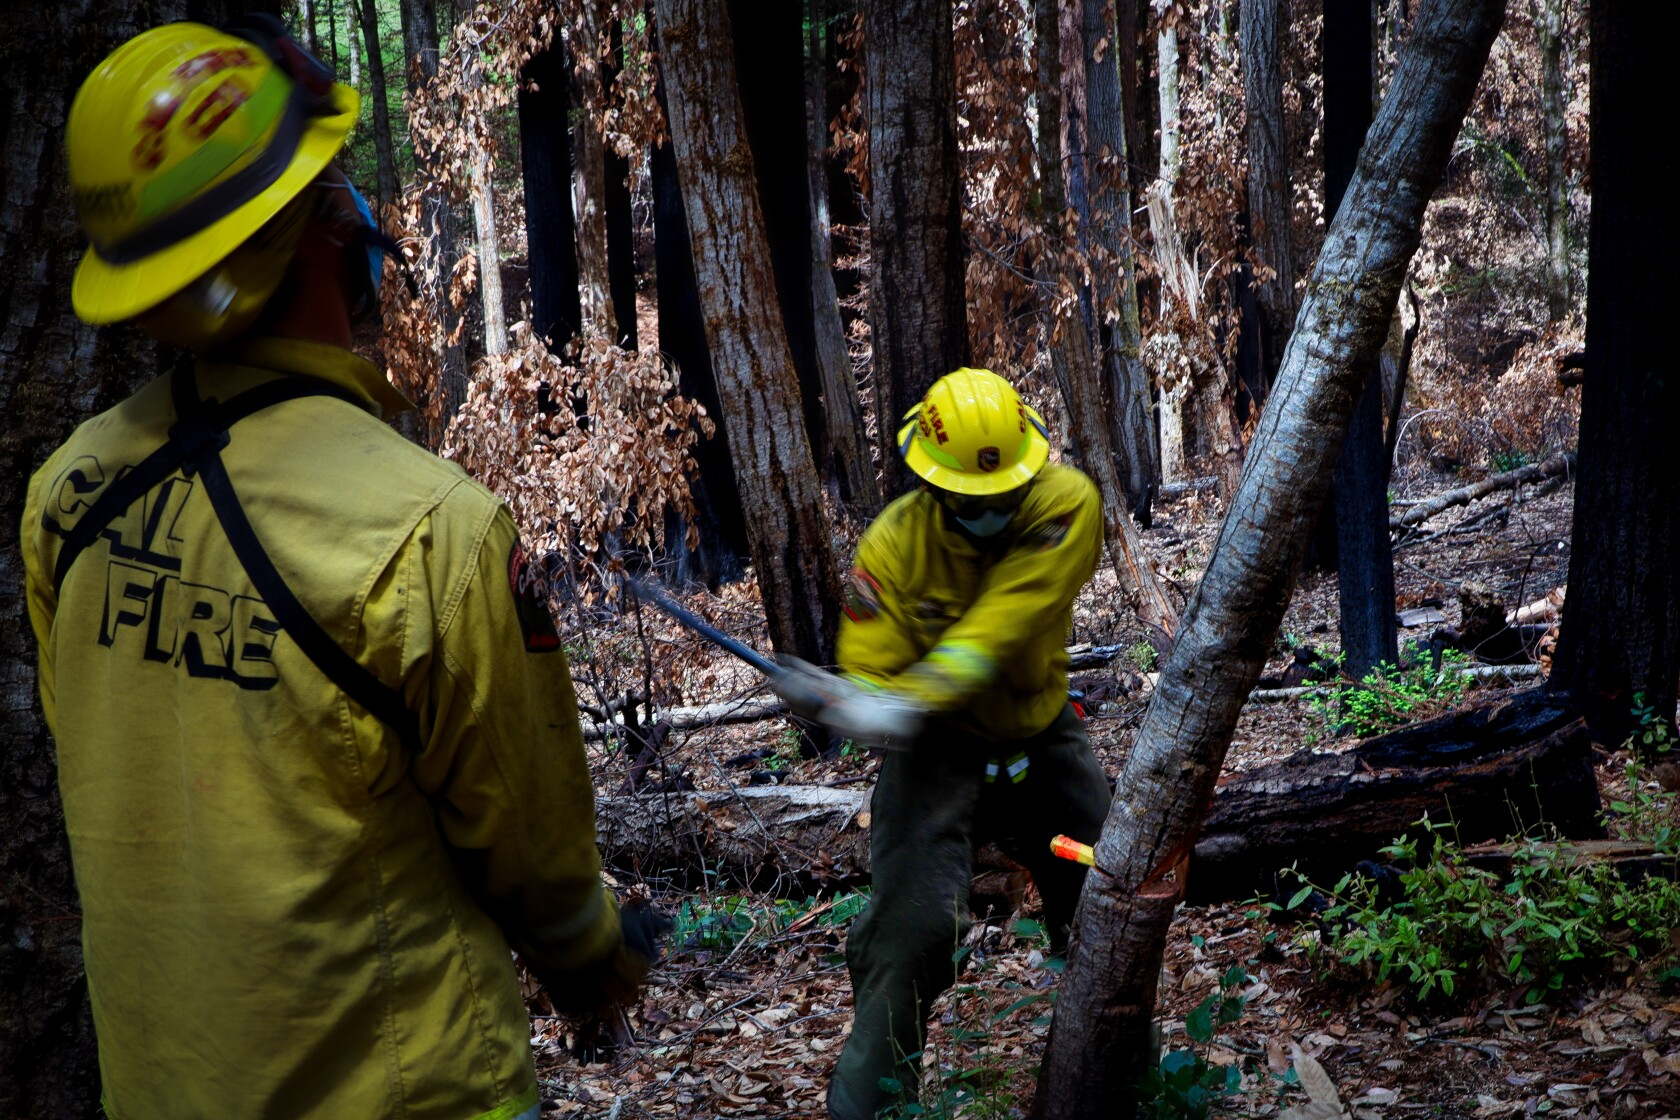 Cal Fire firefighters conduct Bonny Doon Cal Fire clean up dead trees from the understory in preparation for fire season.